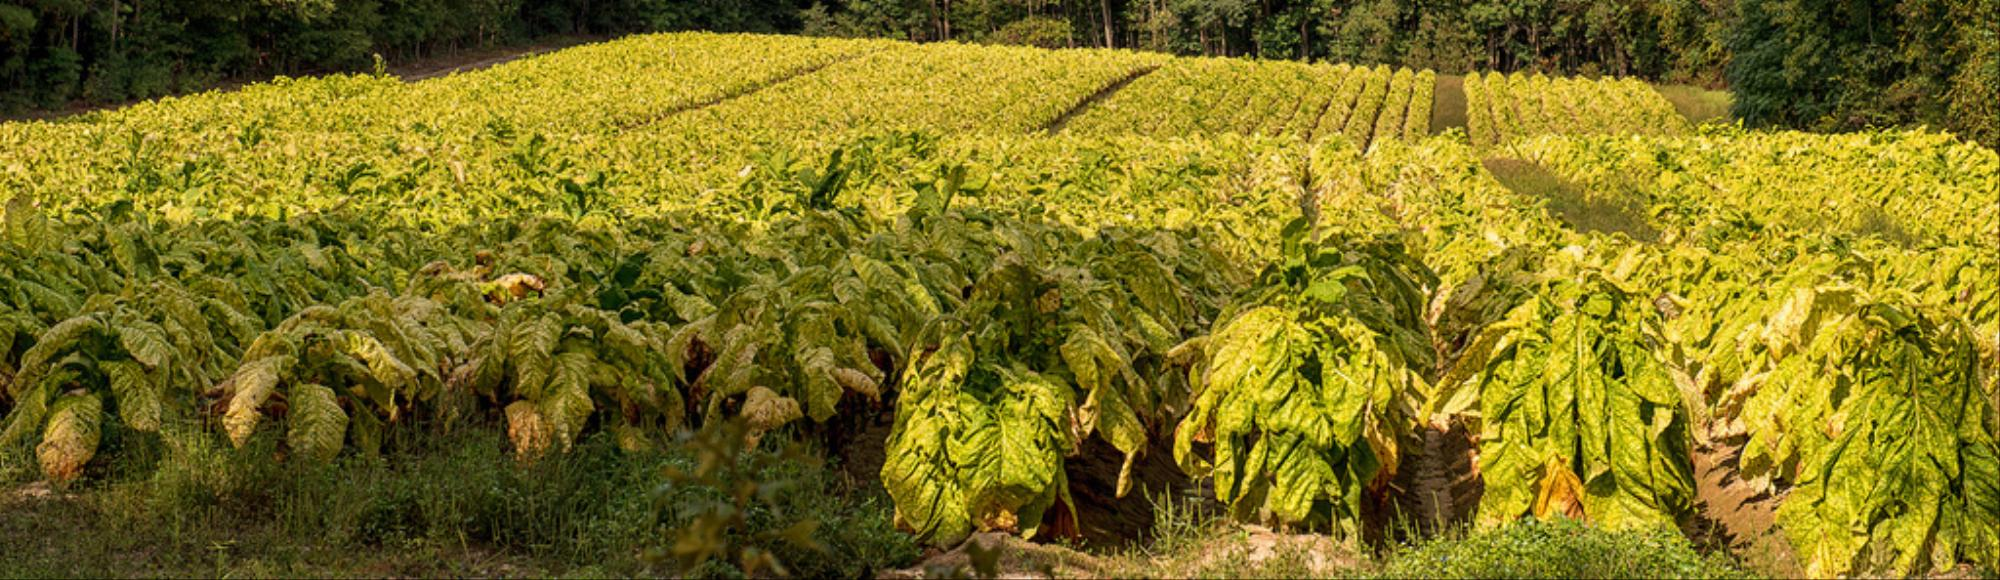 Child Workers Are Getting Nicotine Poisoning on US Tobacco Farms